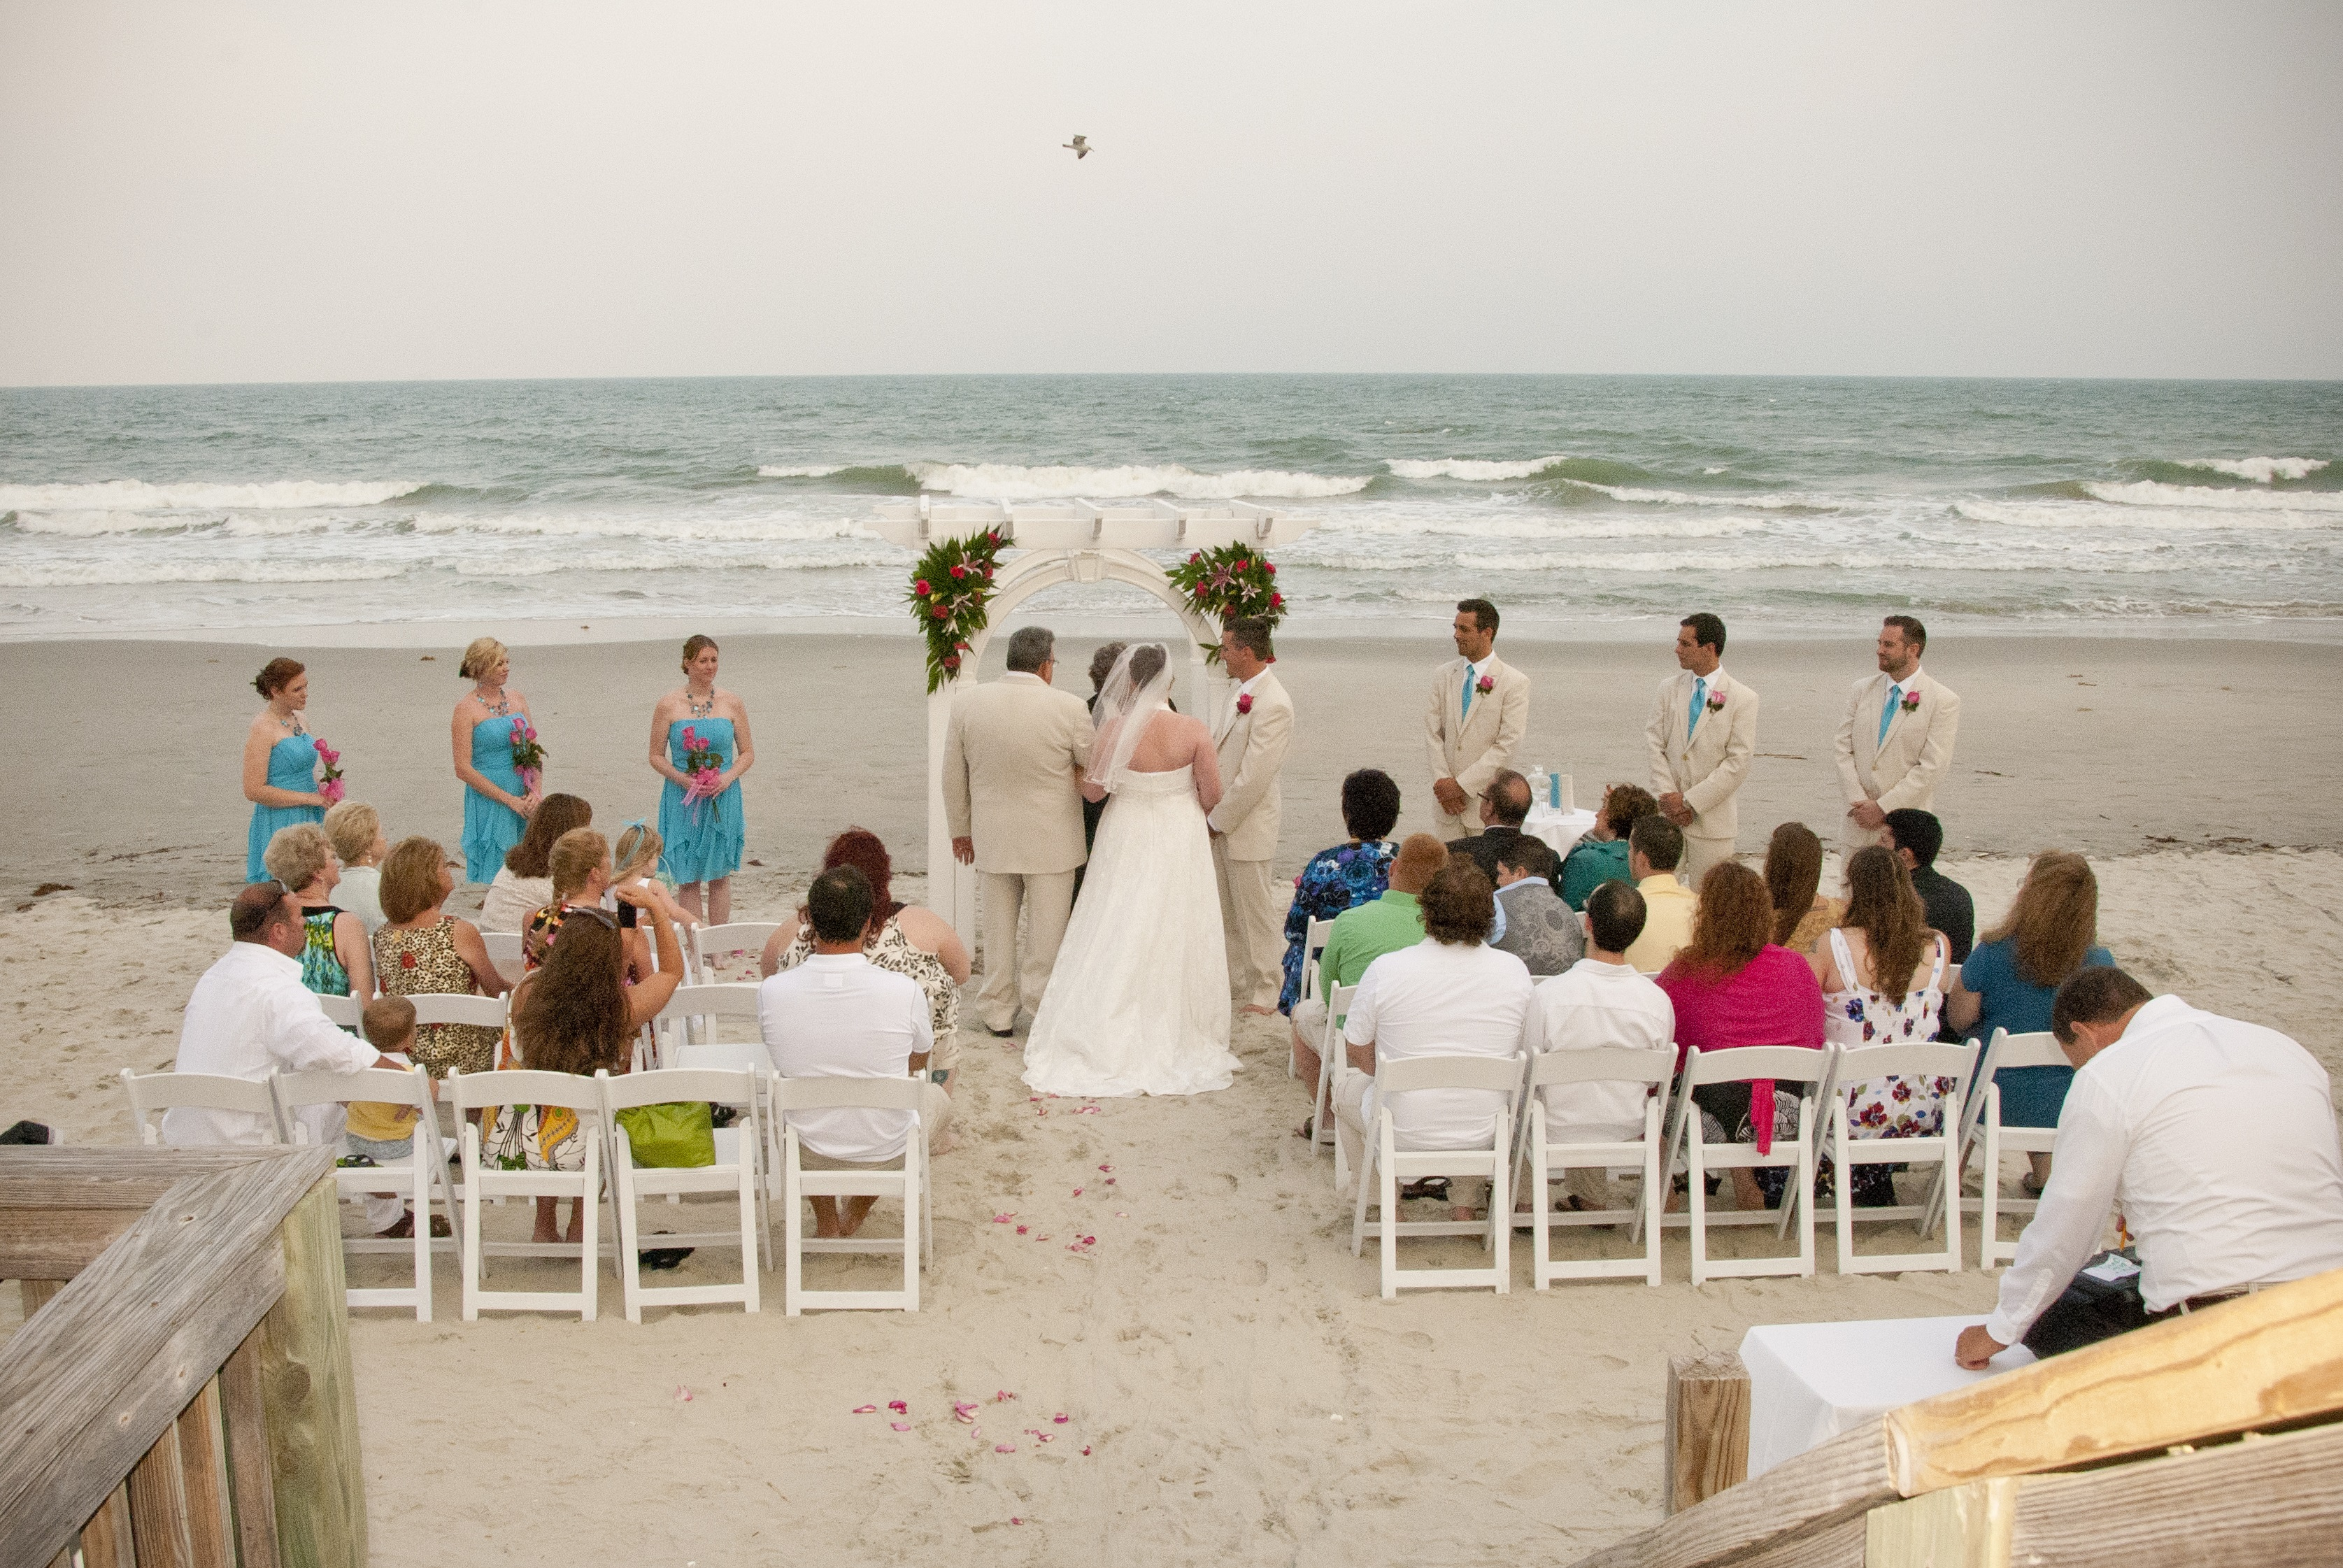 Faq Can You Get Married On The Beach Myrtle Hotels Blog Best Wedding Packages